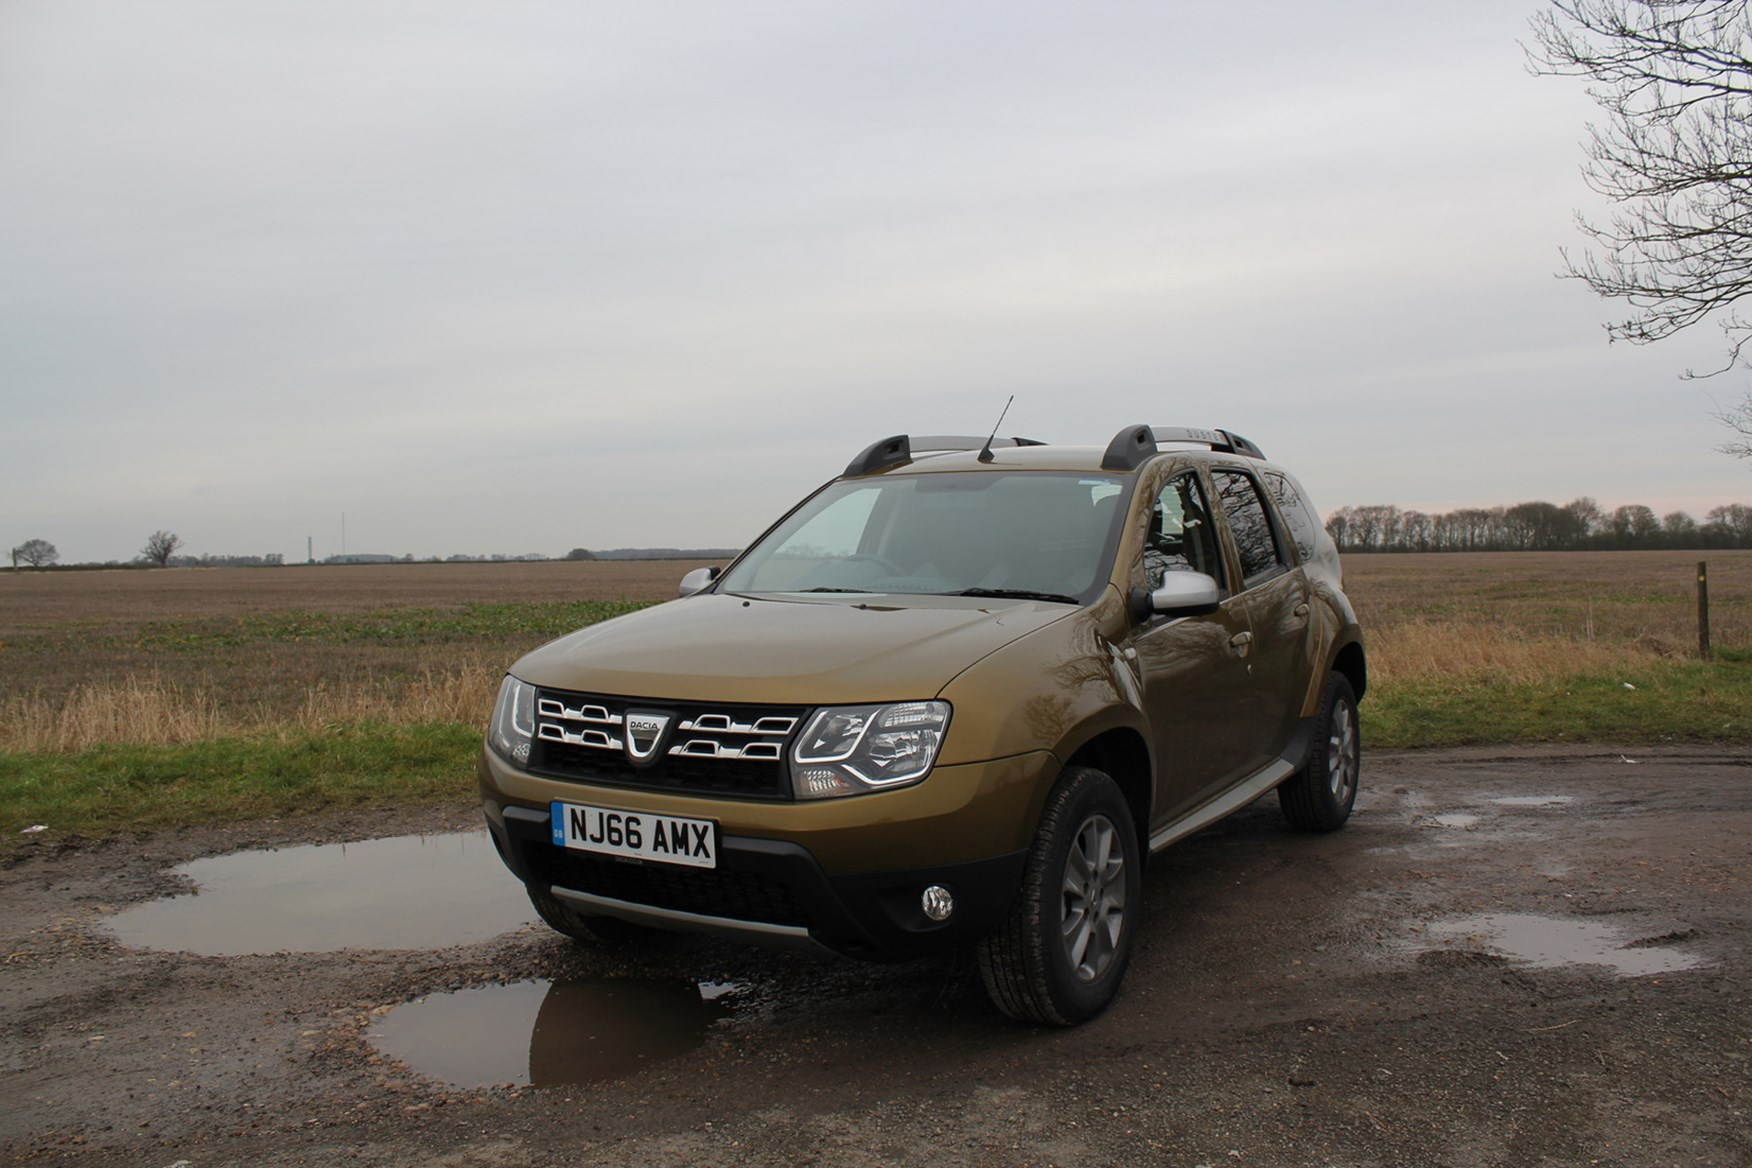 Dacia Duster full review on Parkers Vans - front